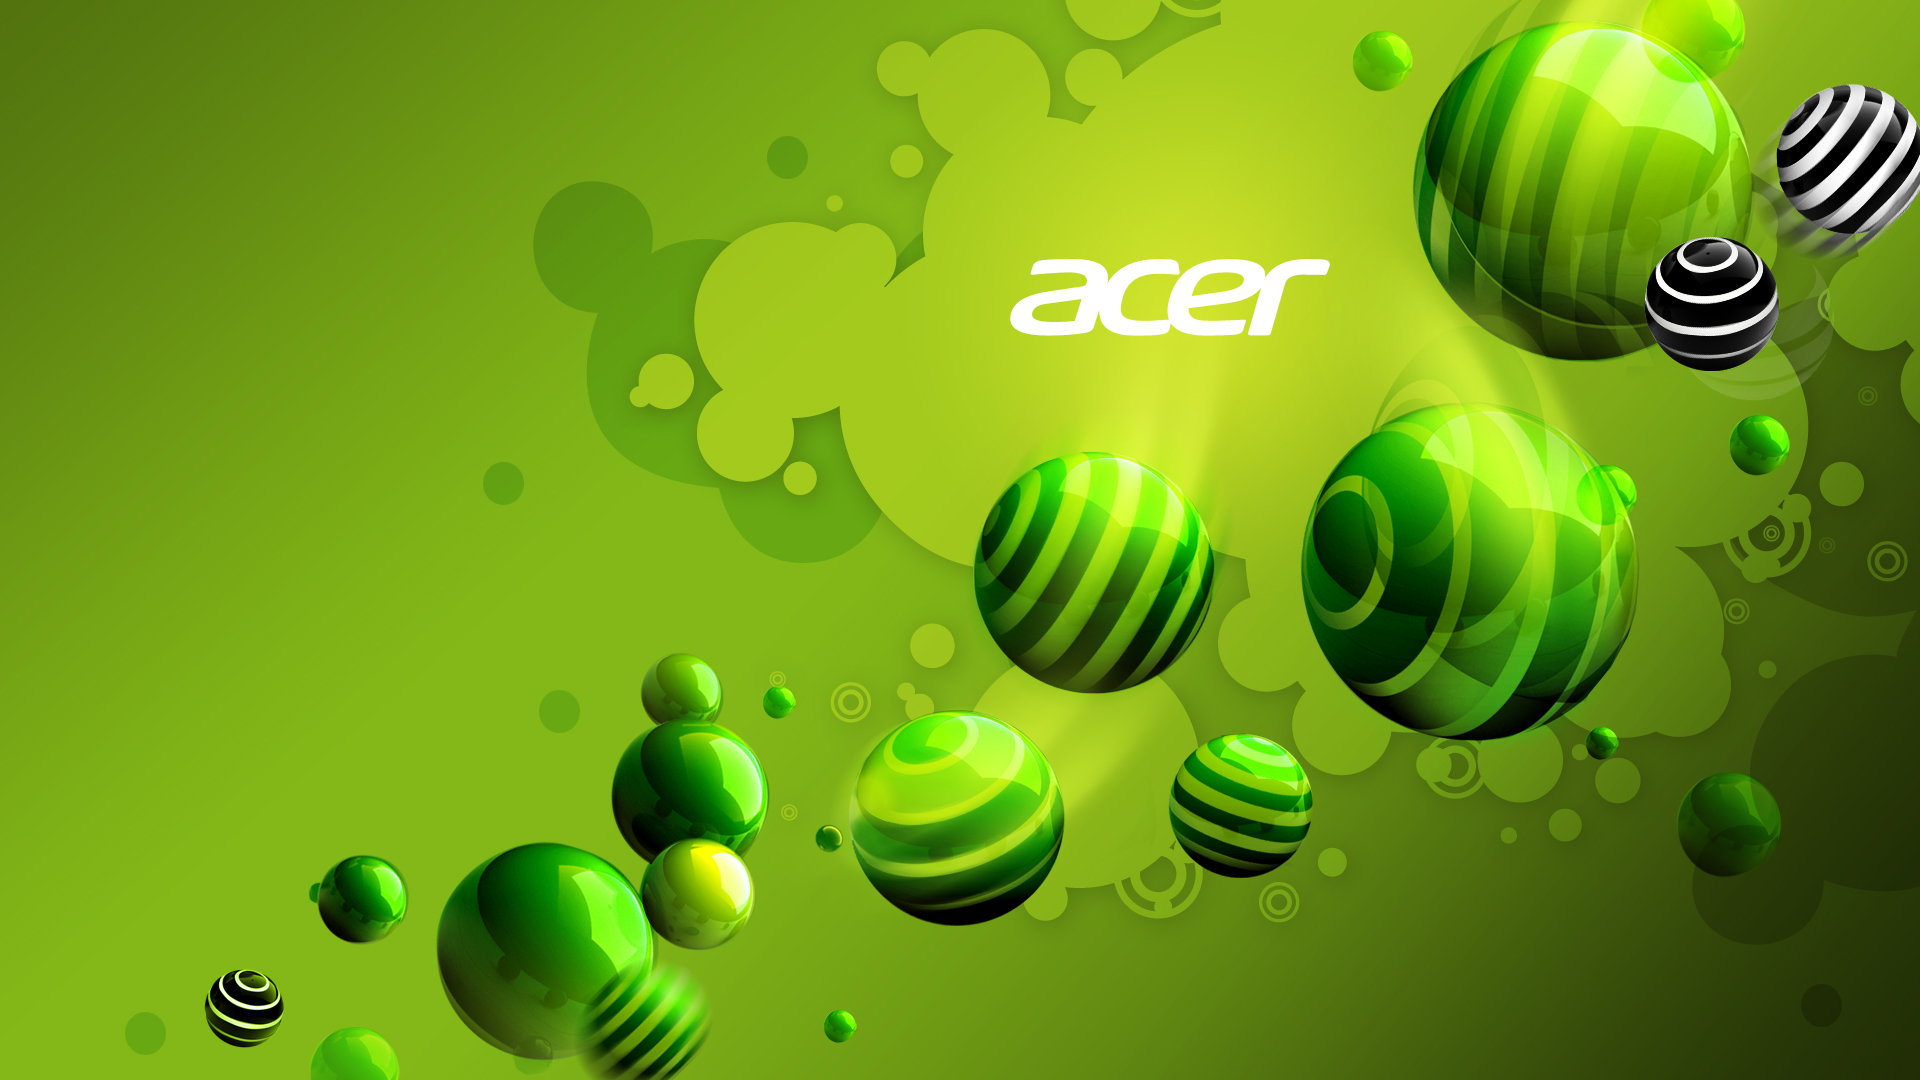 Acer Laptop Windows 8 And 81 Theme All For 10 1920x1080